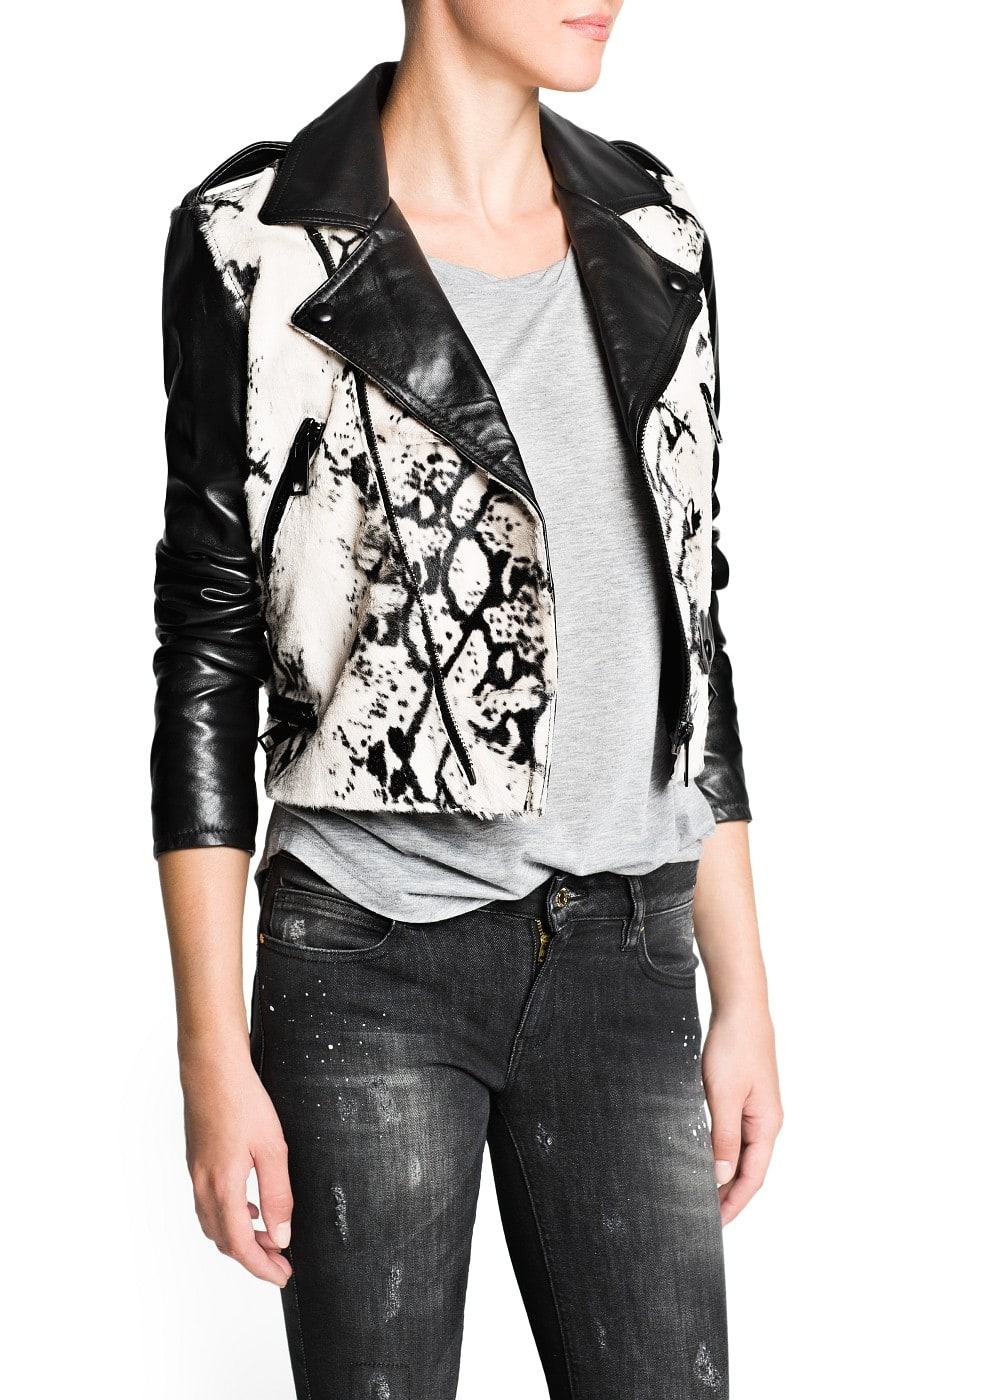 PREMIUM - Combi leather biker jacket